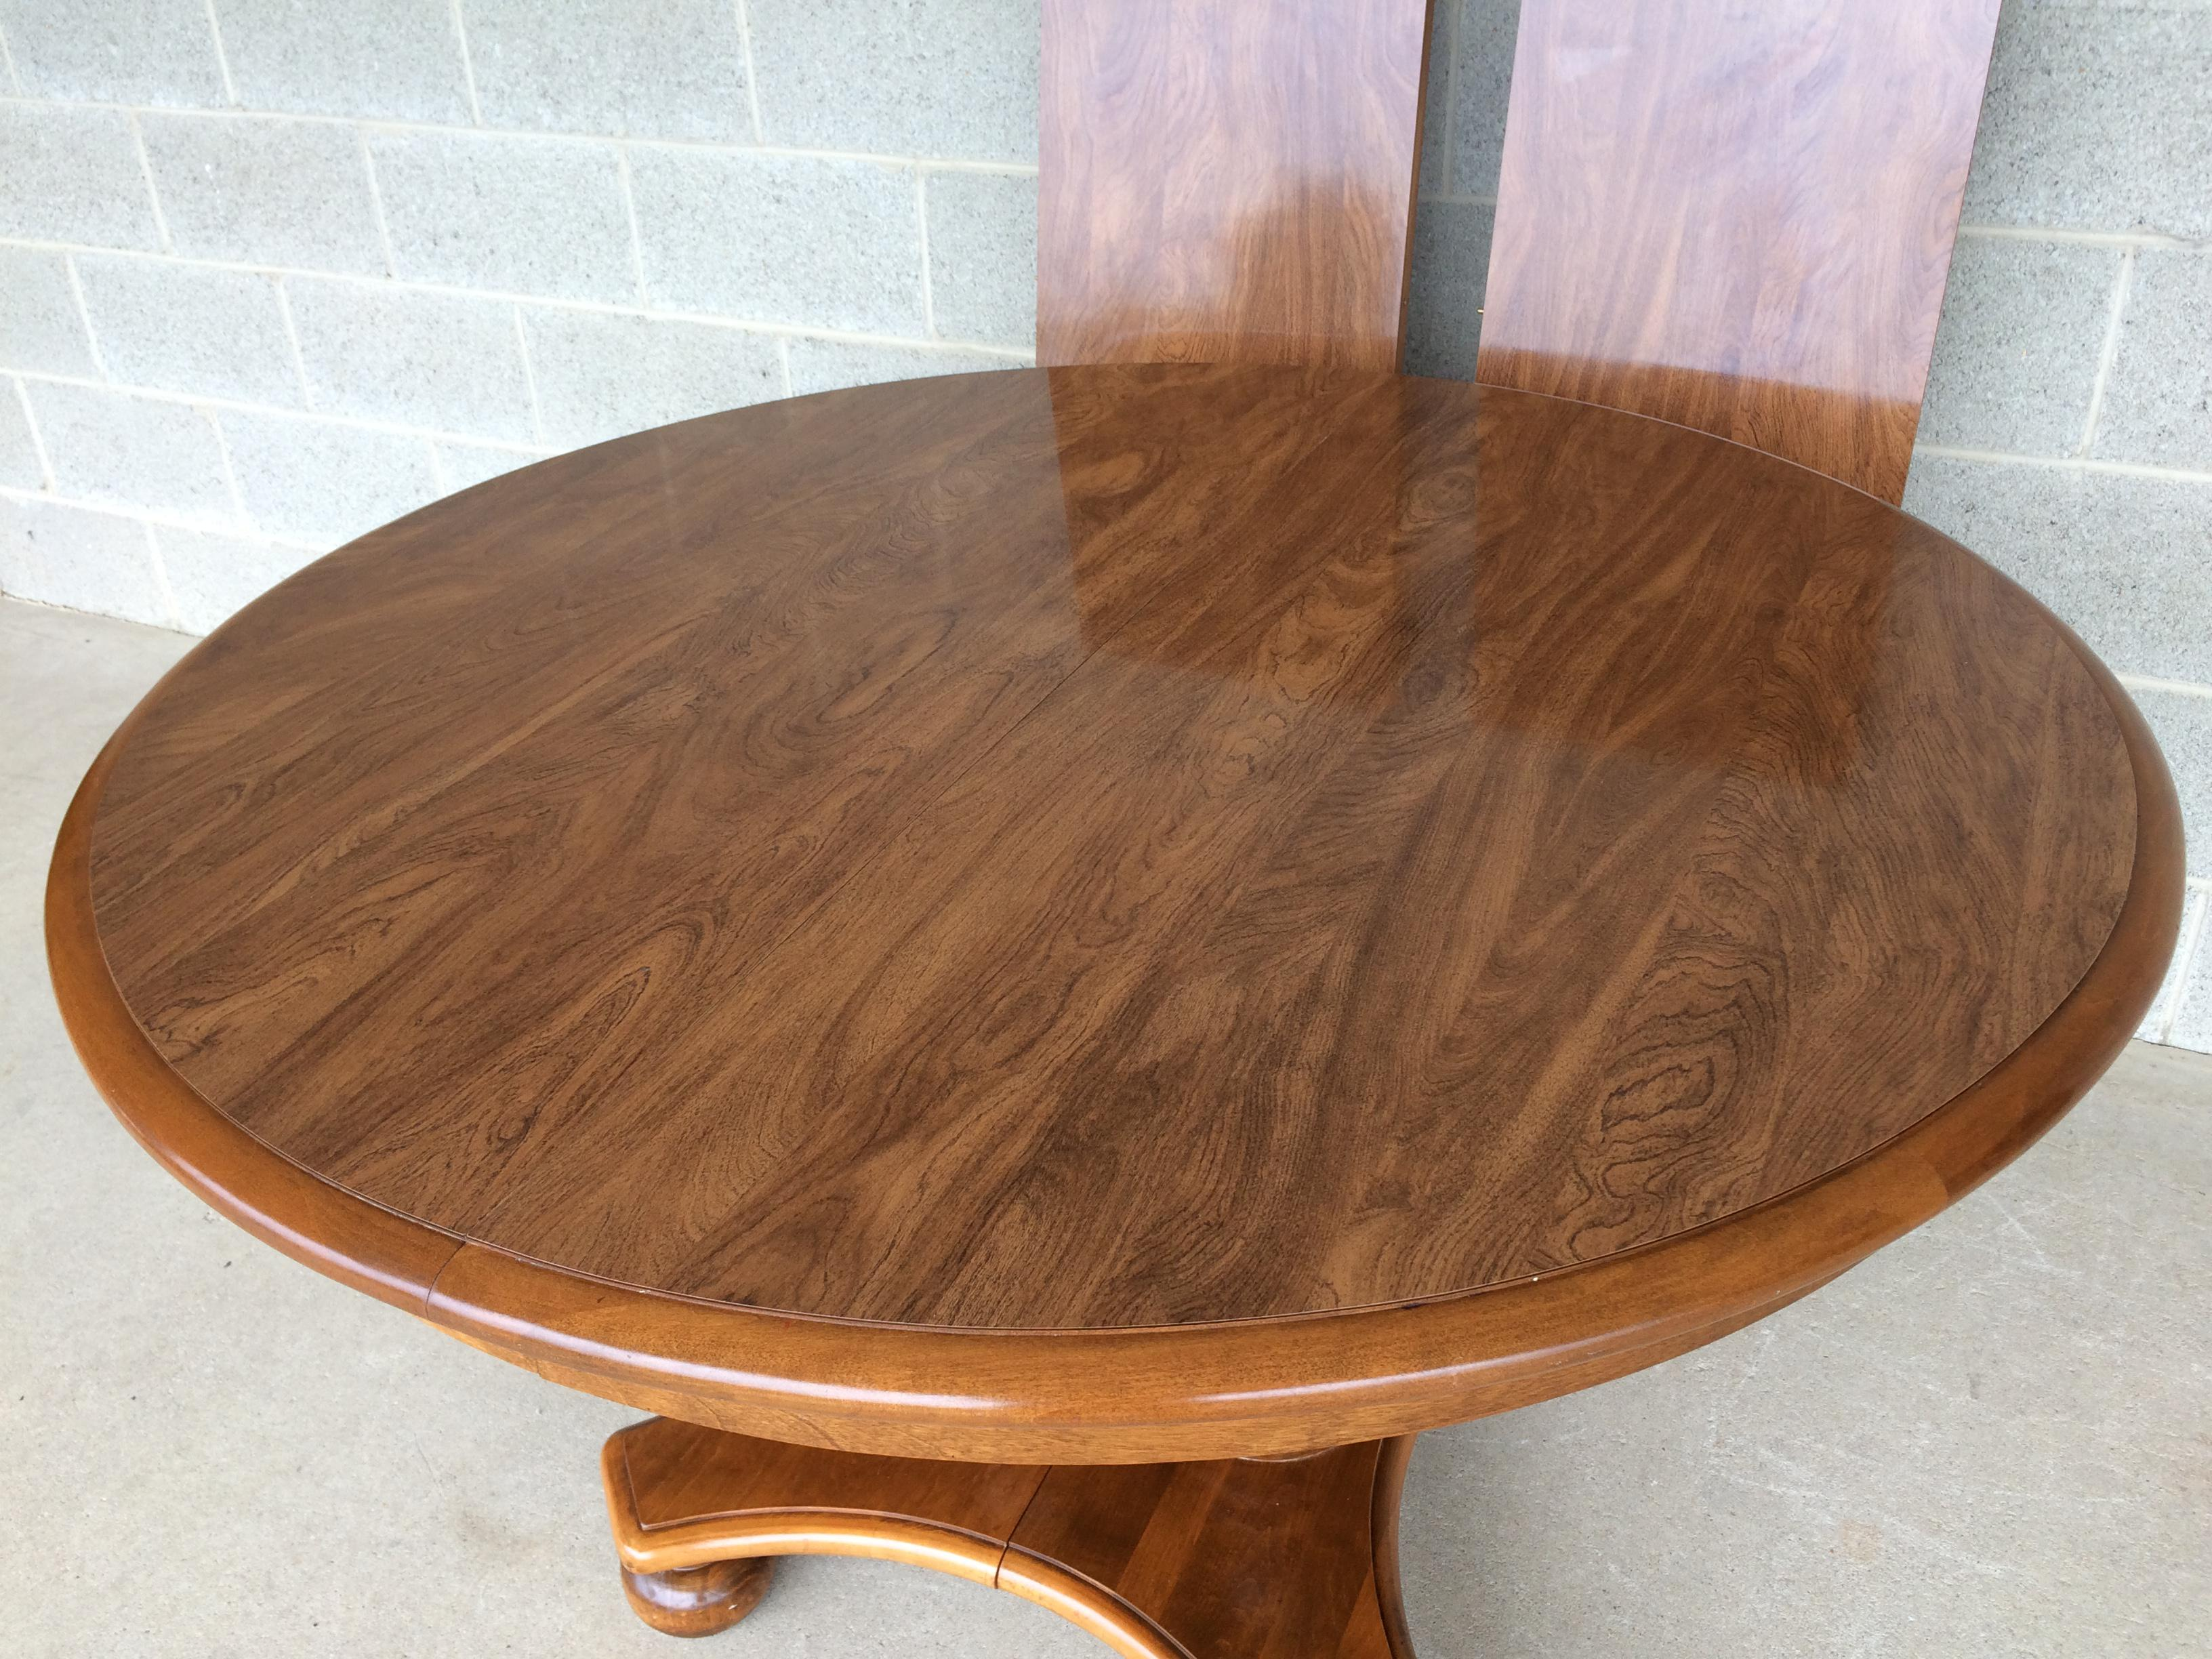 Table With 2 Leaves Part - 32: Ethan Allen Maple Pedestal Dining Table With 2 Leaves - Image 4 Of 10